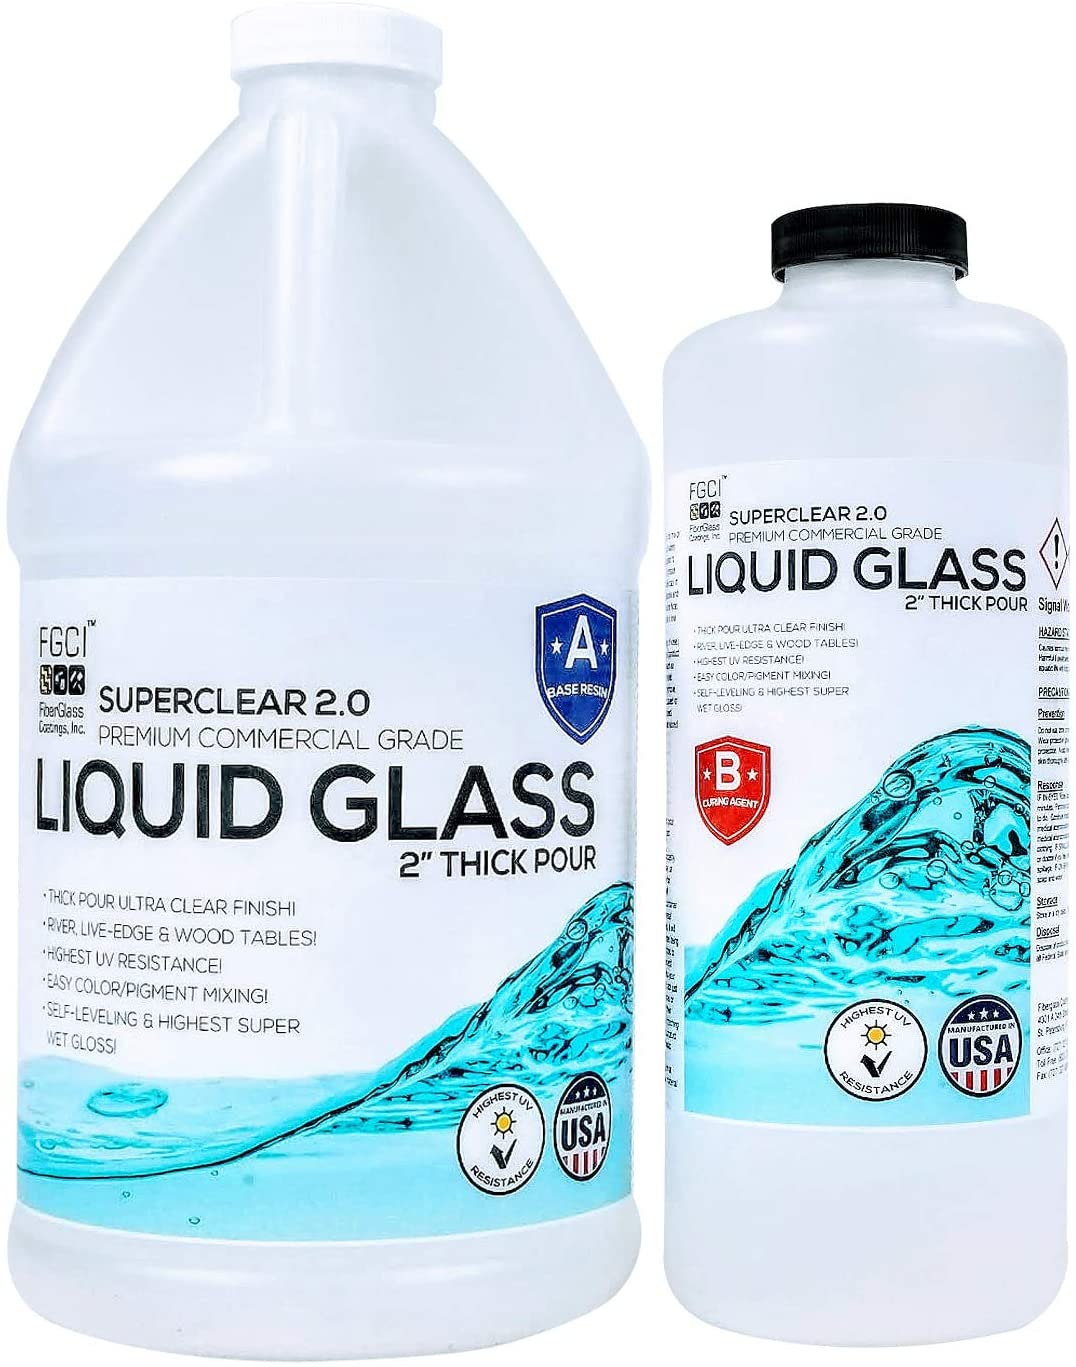 Epoxy Resin Crystal Clear Liquid Glass - Pour 2 to 4 Inches Plus at One Time for Live Edge and River Tables - ¾ Gallon Clear Epoxy Resin Kit